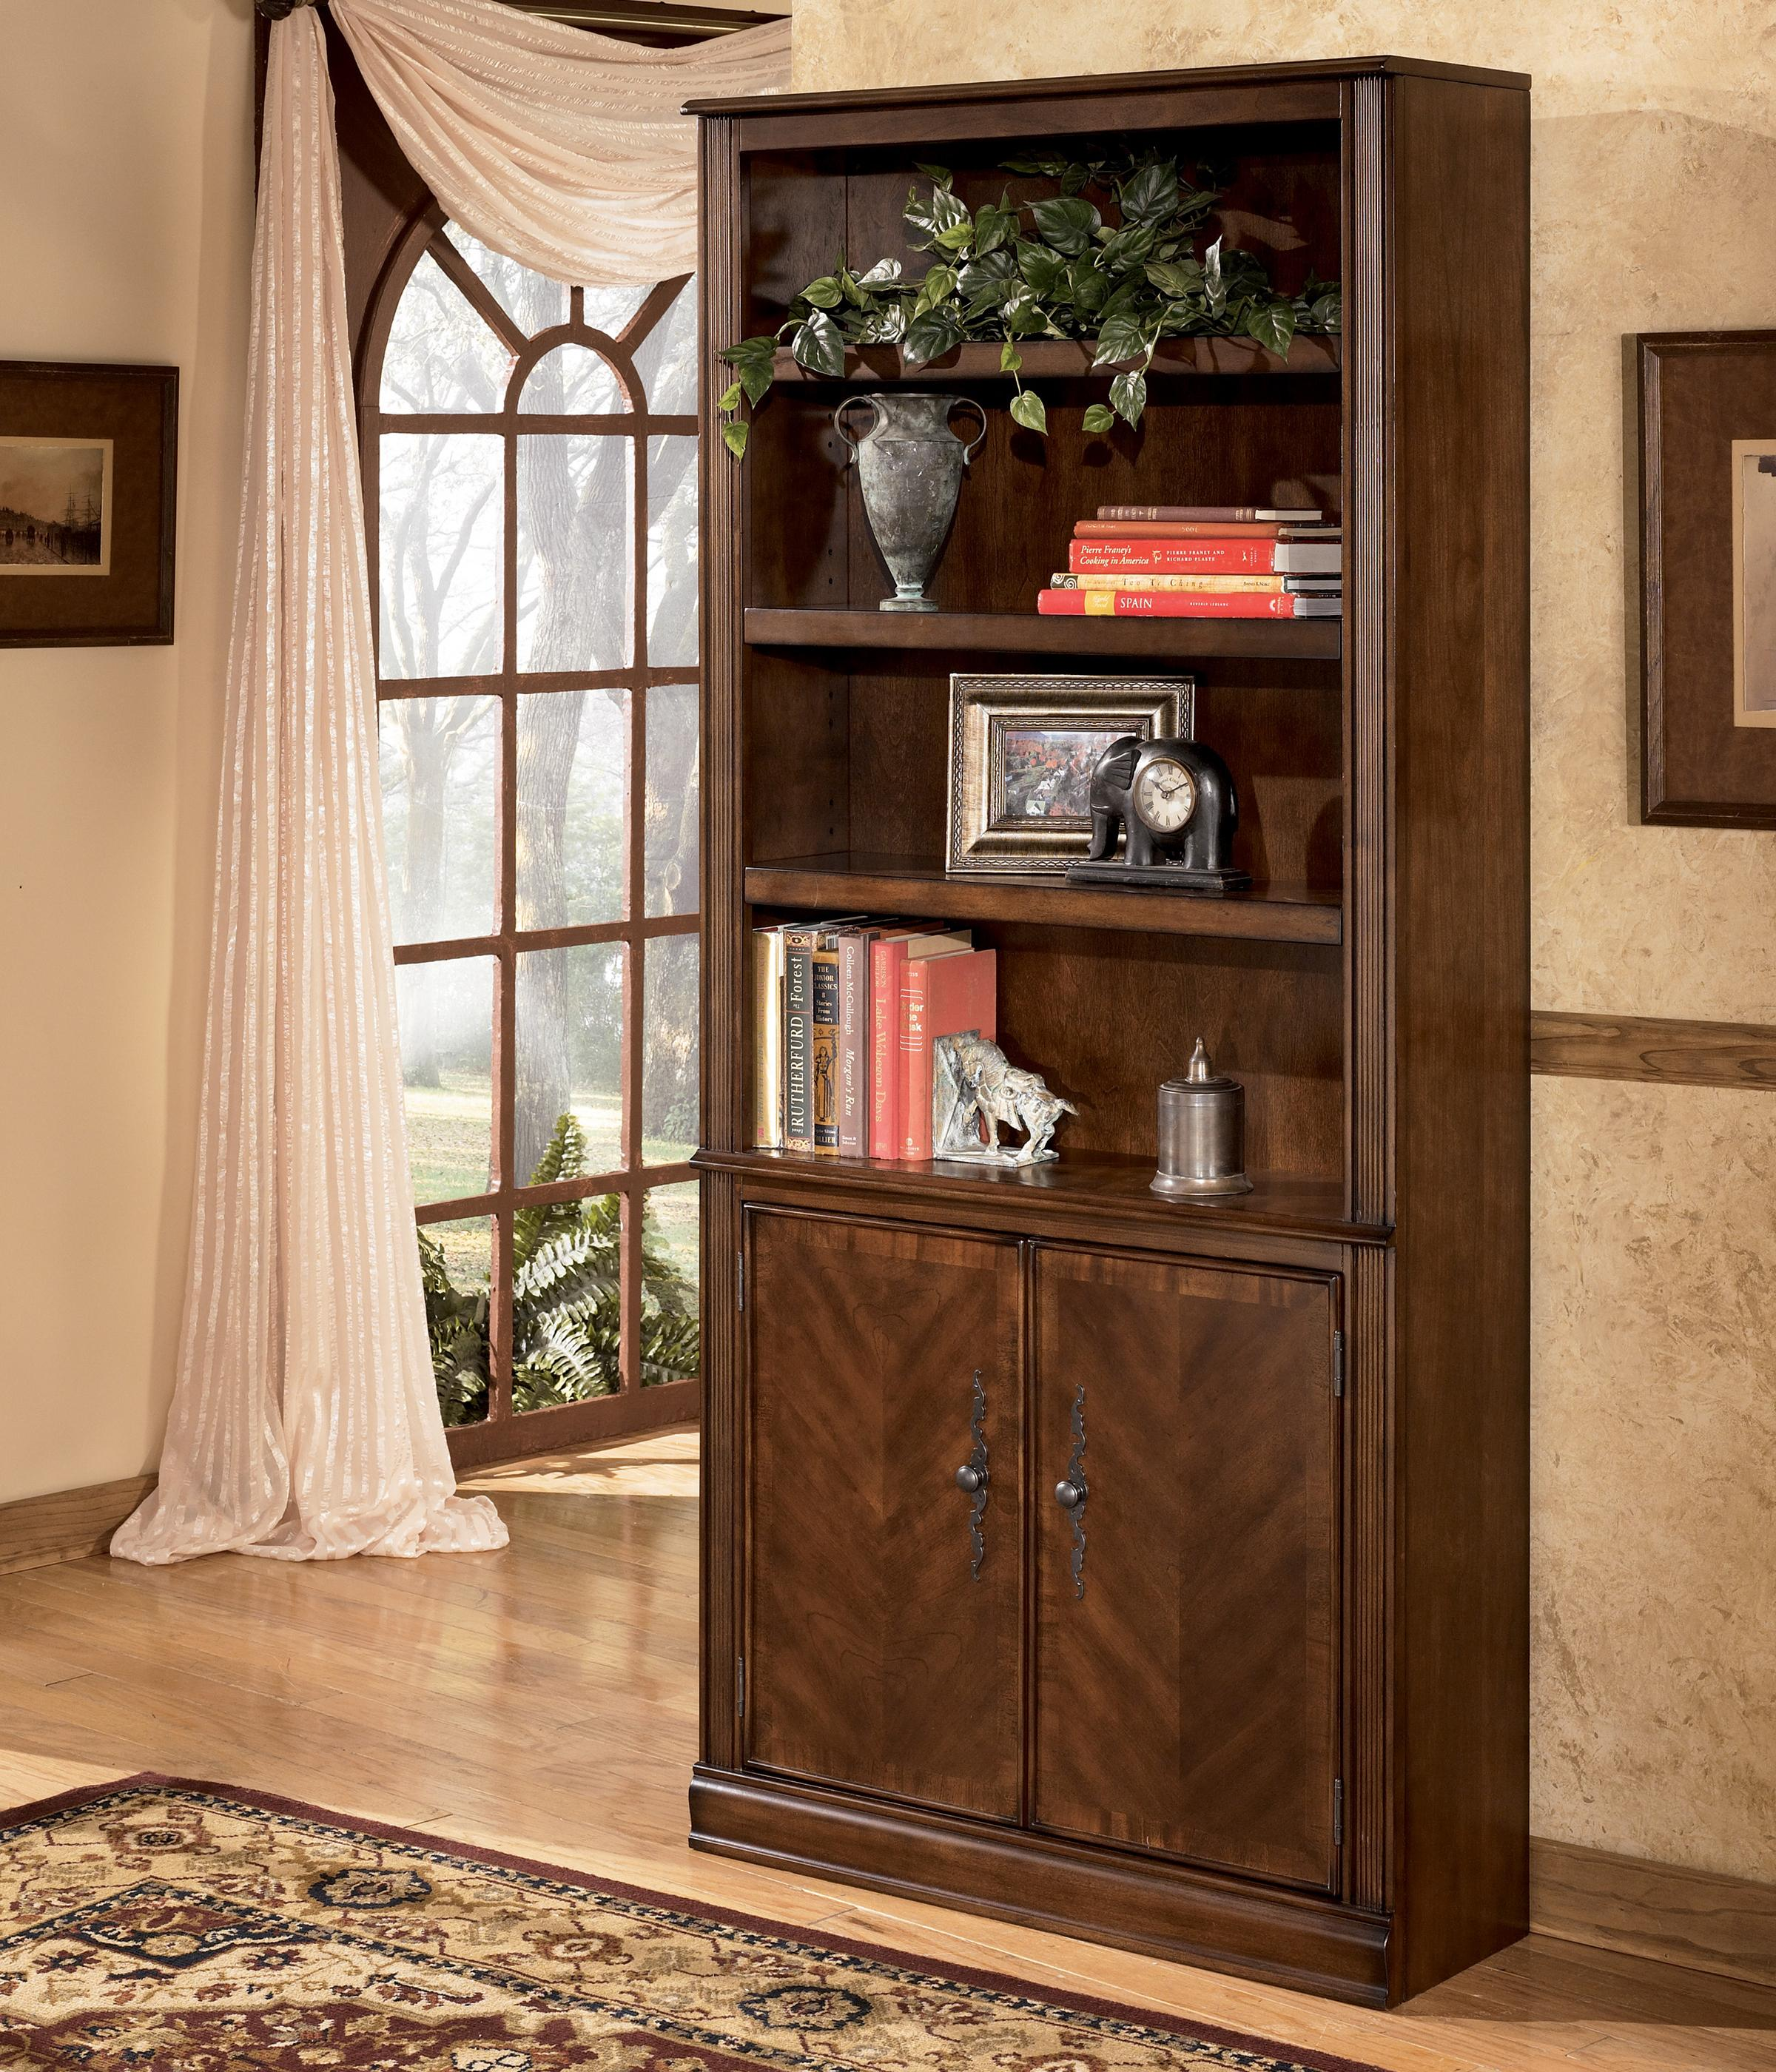 Hamlyn Large Door Bookcase by Signature Design by Ashley at Suburban Furniture